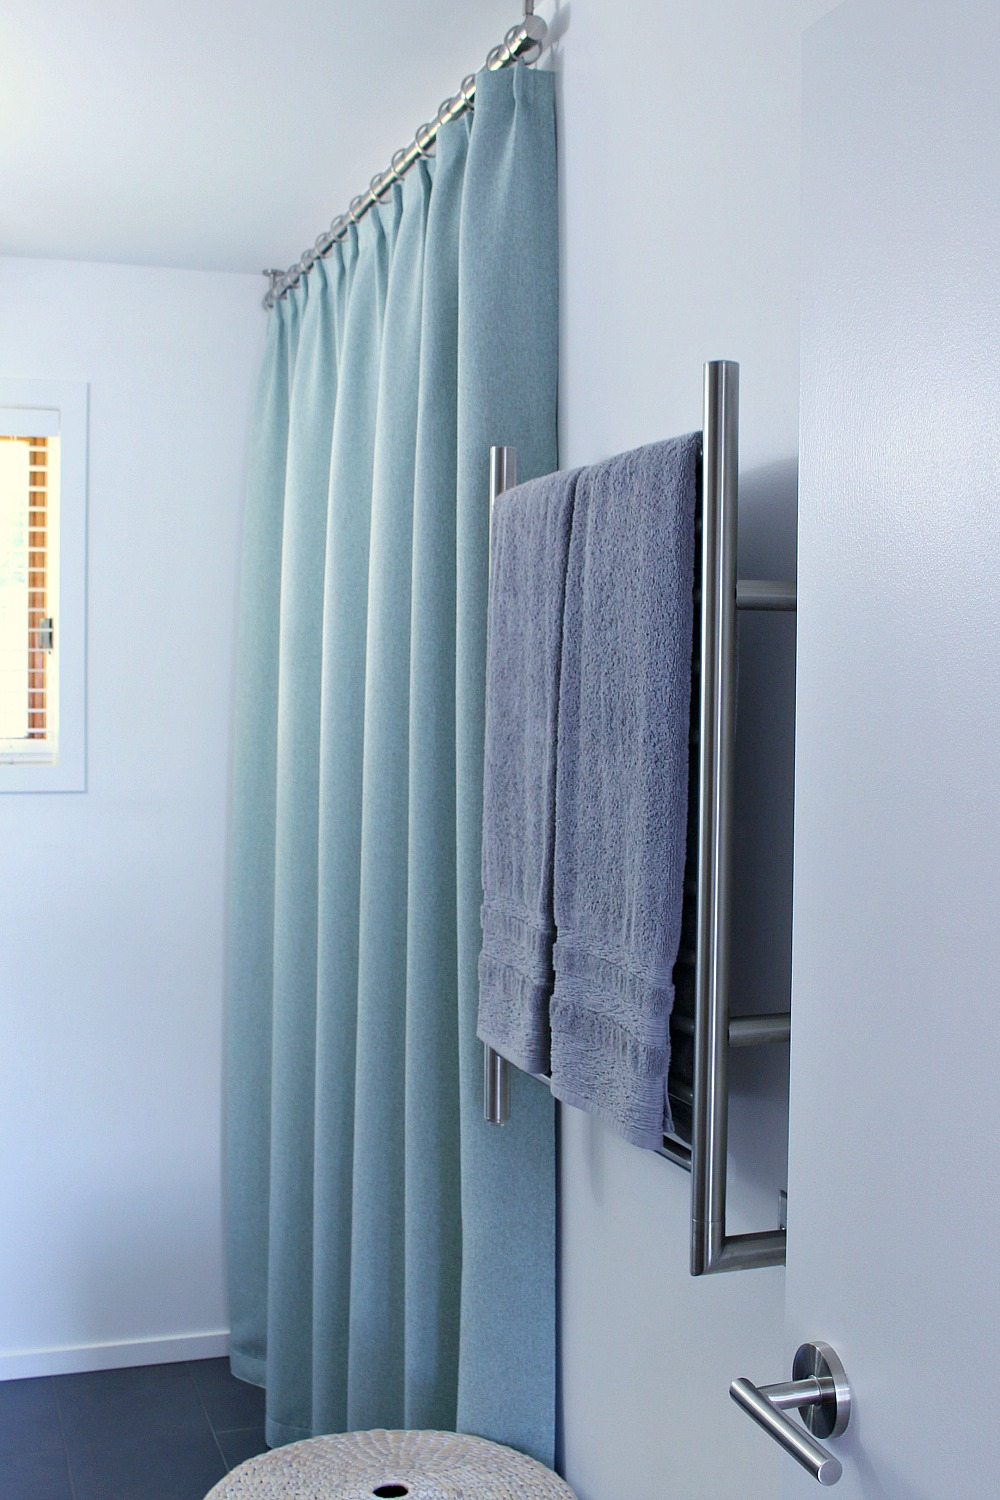 Ceiling Mounted Shower Curtain Rod + Turquoise Tweed Pleated Shower Curtain in Modern Bathroom Reno | www.danslelakehouse.com